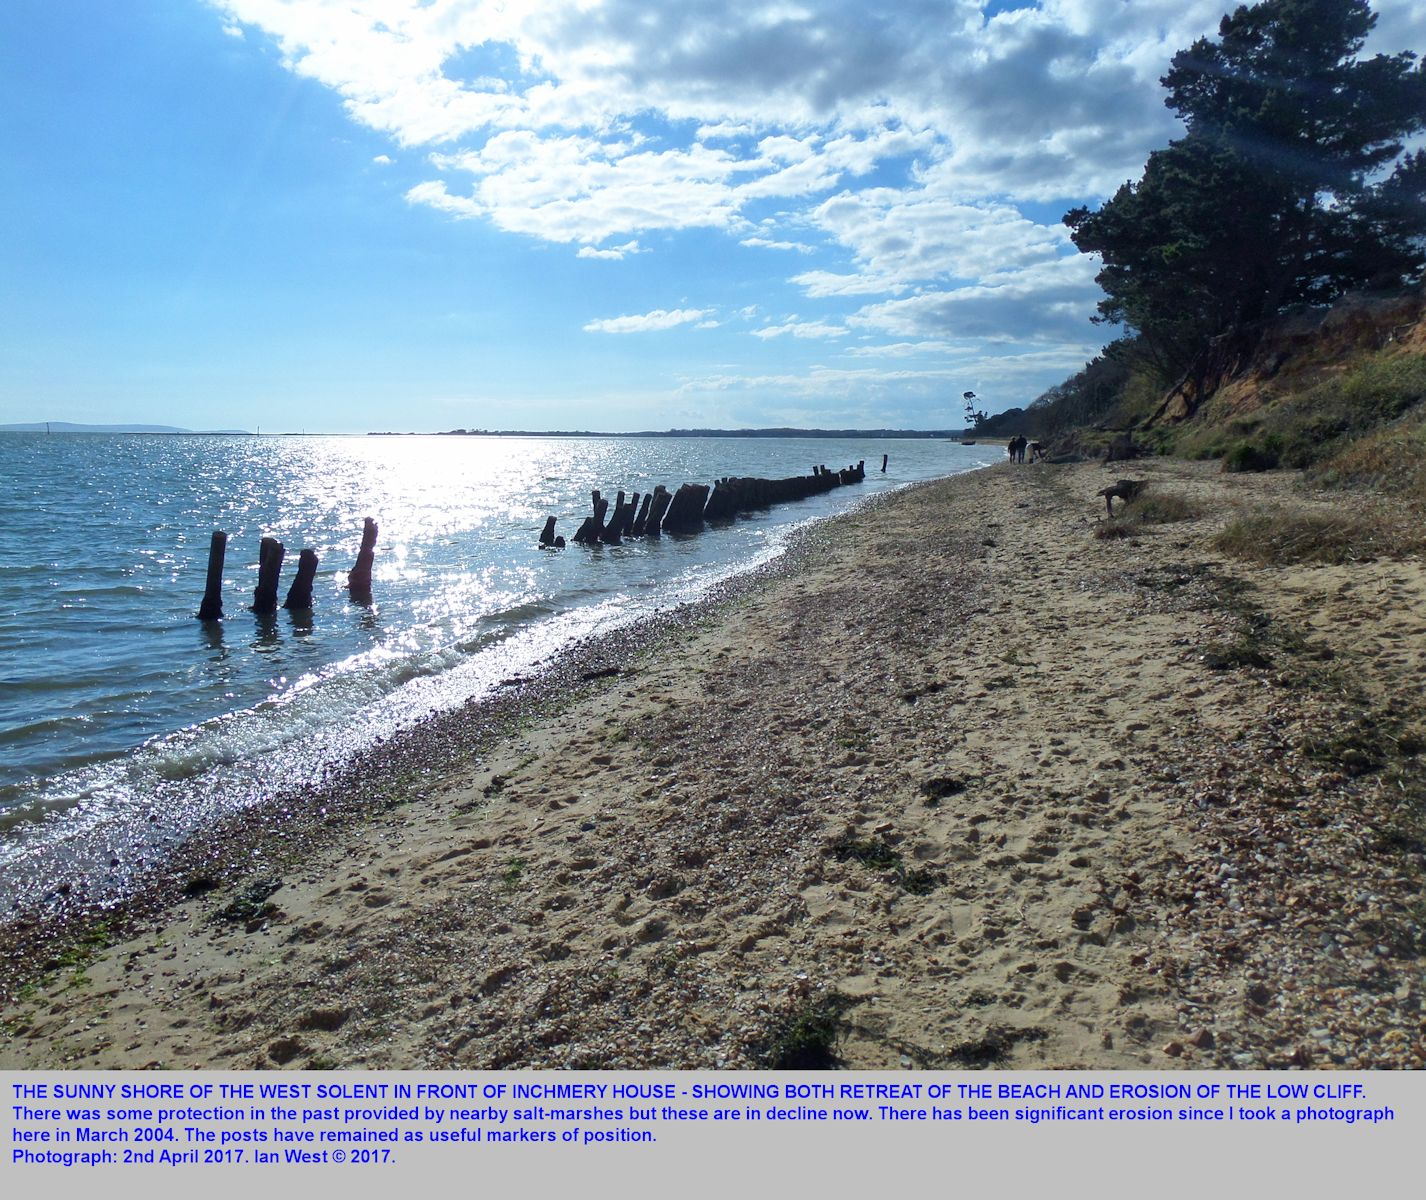 The coast near Inchmery House, east of Lepe Beach, Hampshire, as seen on the 16th April 2017, with a marked increase in erosion since 2004